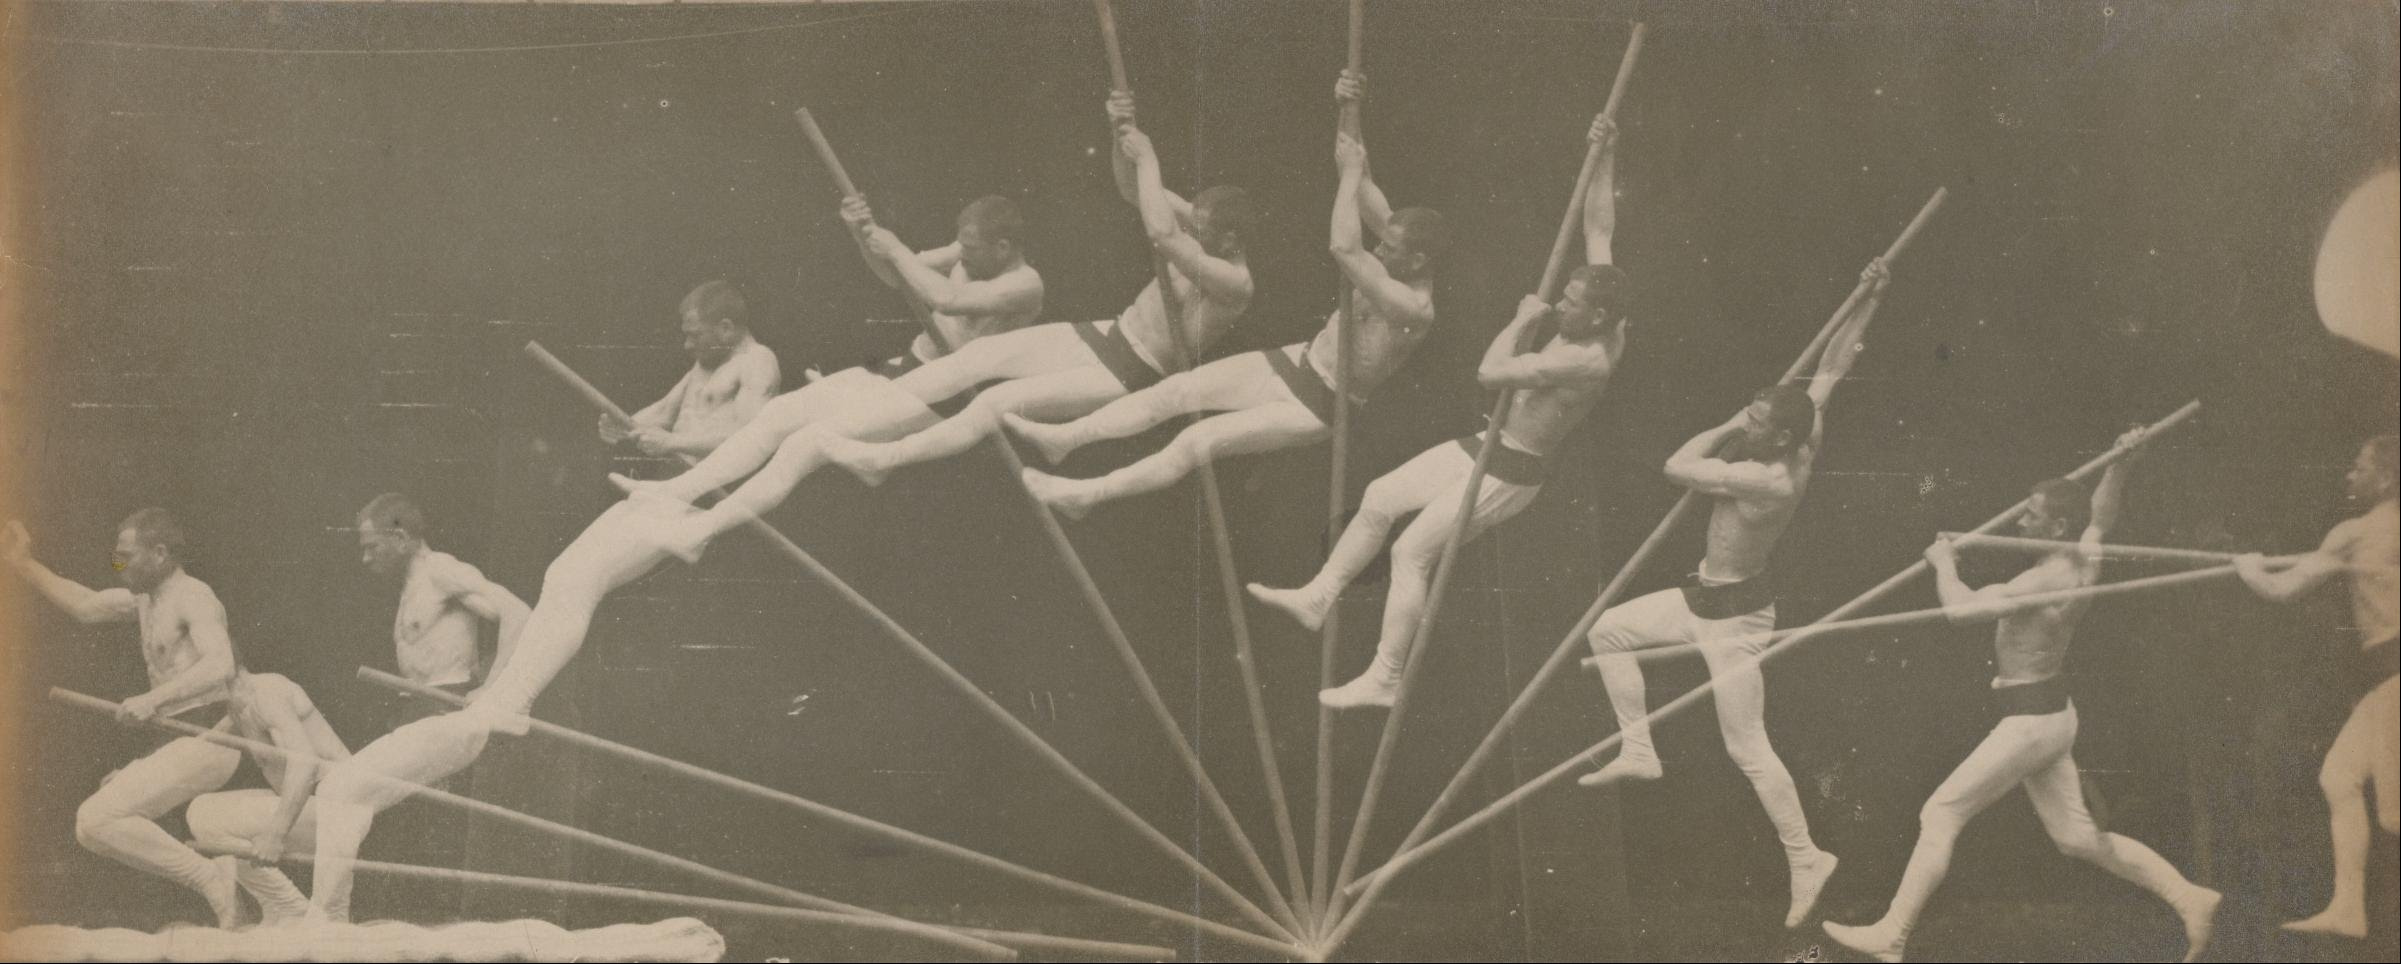 Étienne-Jules_Marey_-_Movements_in_Pole_Vaulting_-_Google_Art_Project